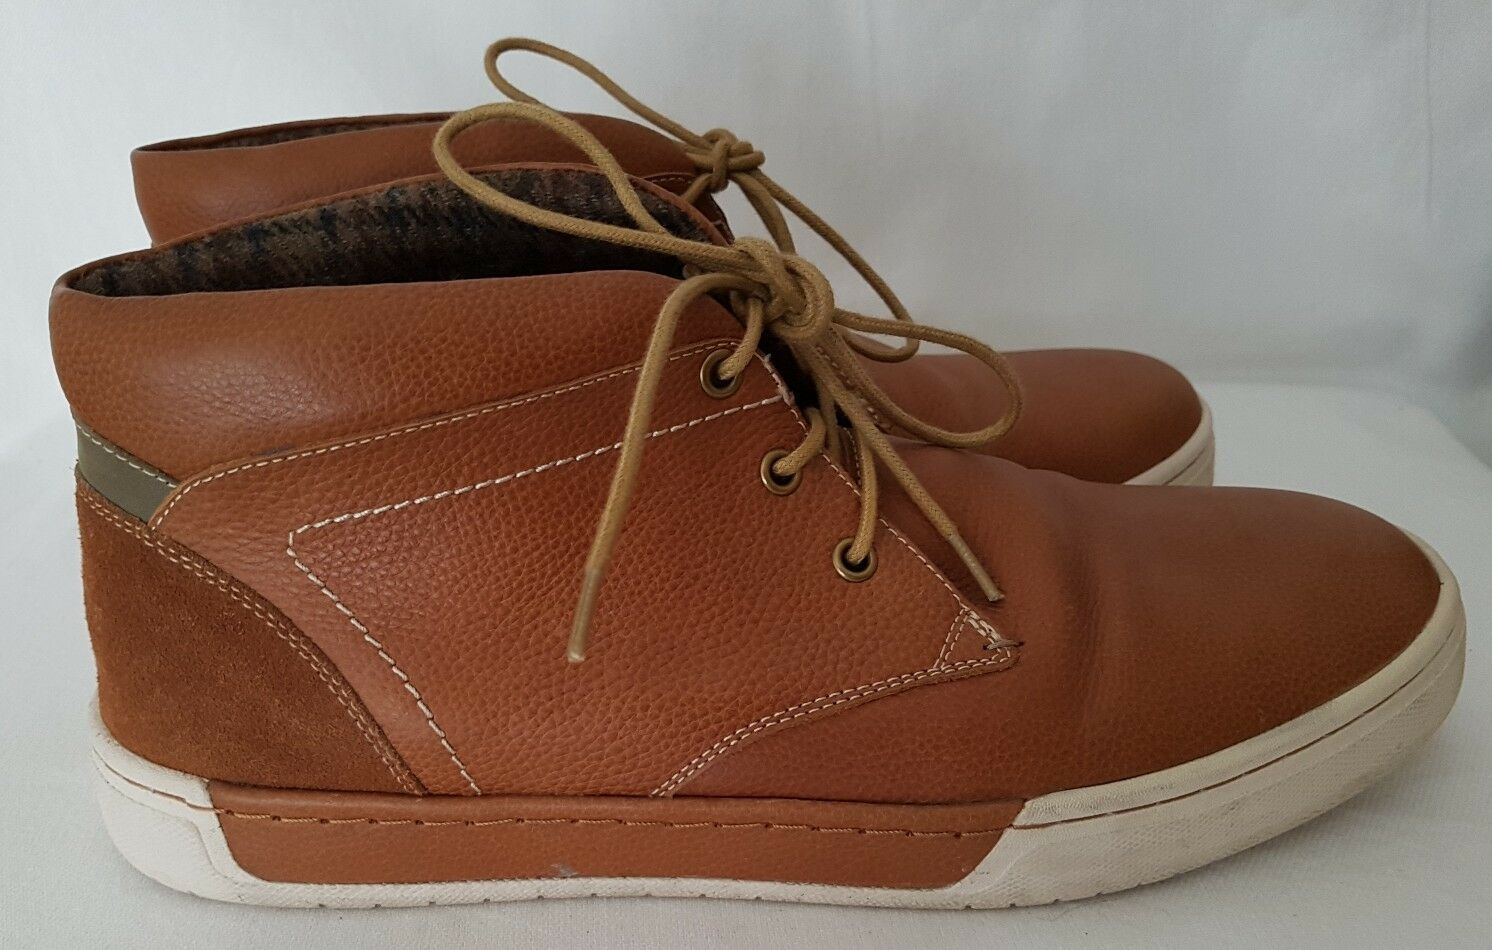 Jones Top Kriscross Mens Leather High Top Jones Trainers Ankle Boots UK 10 EUR 44  New 2eaa4d